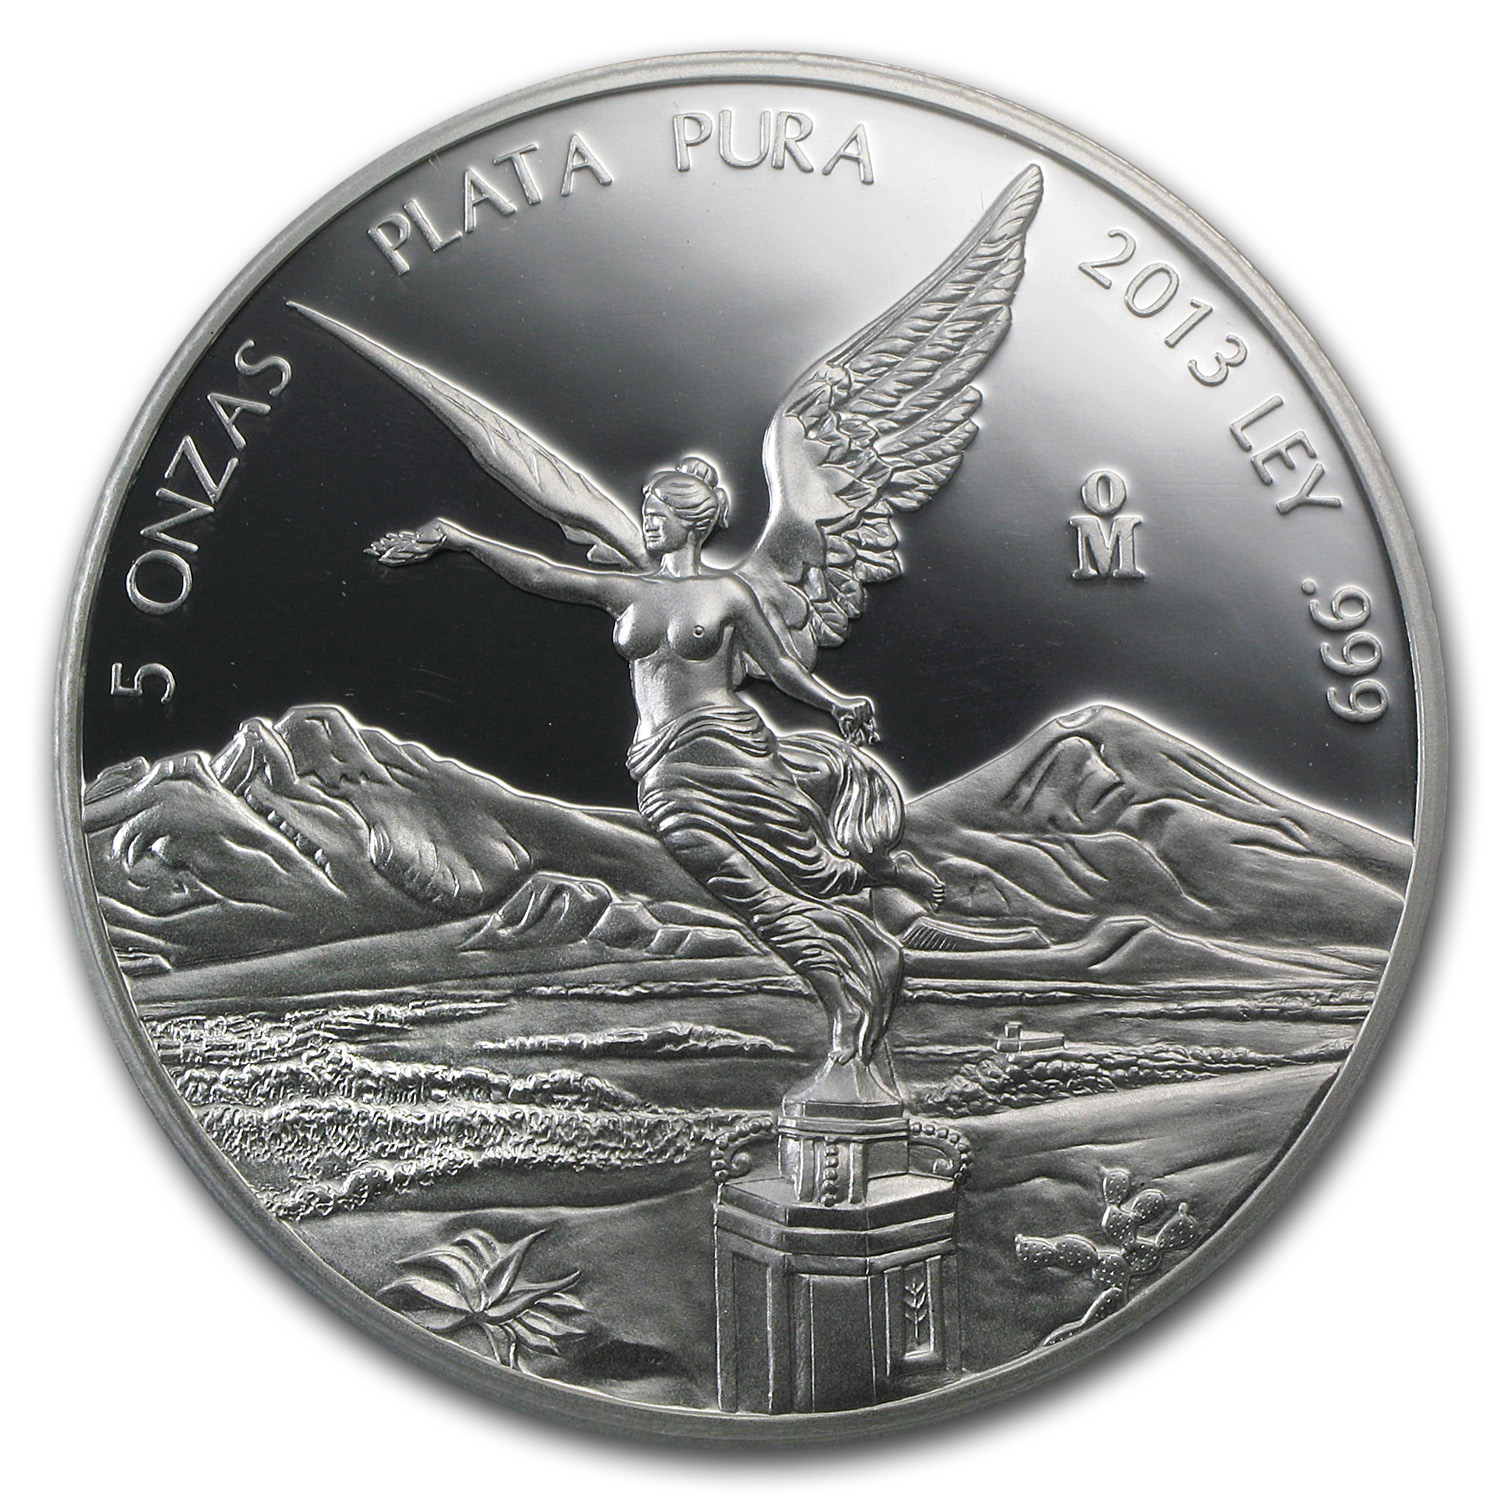 2013 Mexico 5 oz Proof Silver Libertad PR-70 PCGS